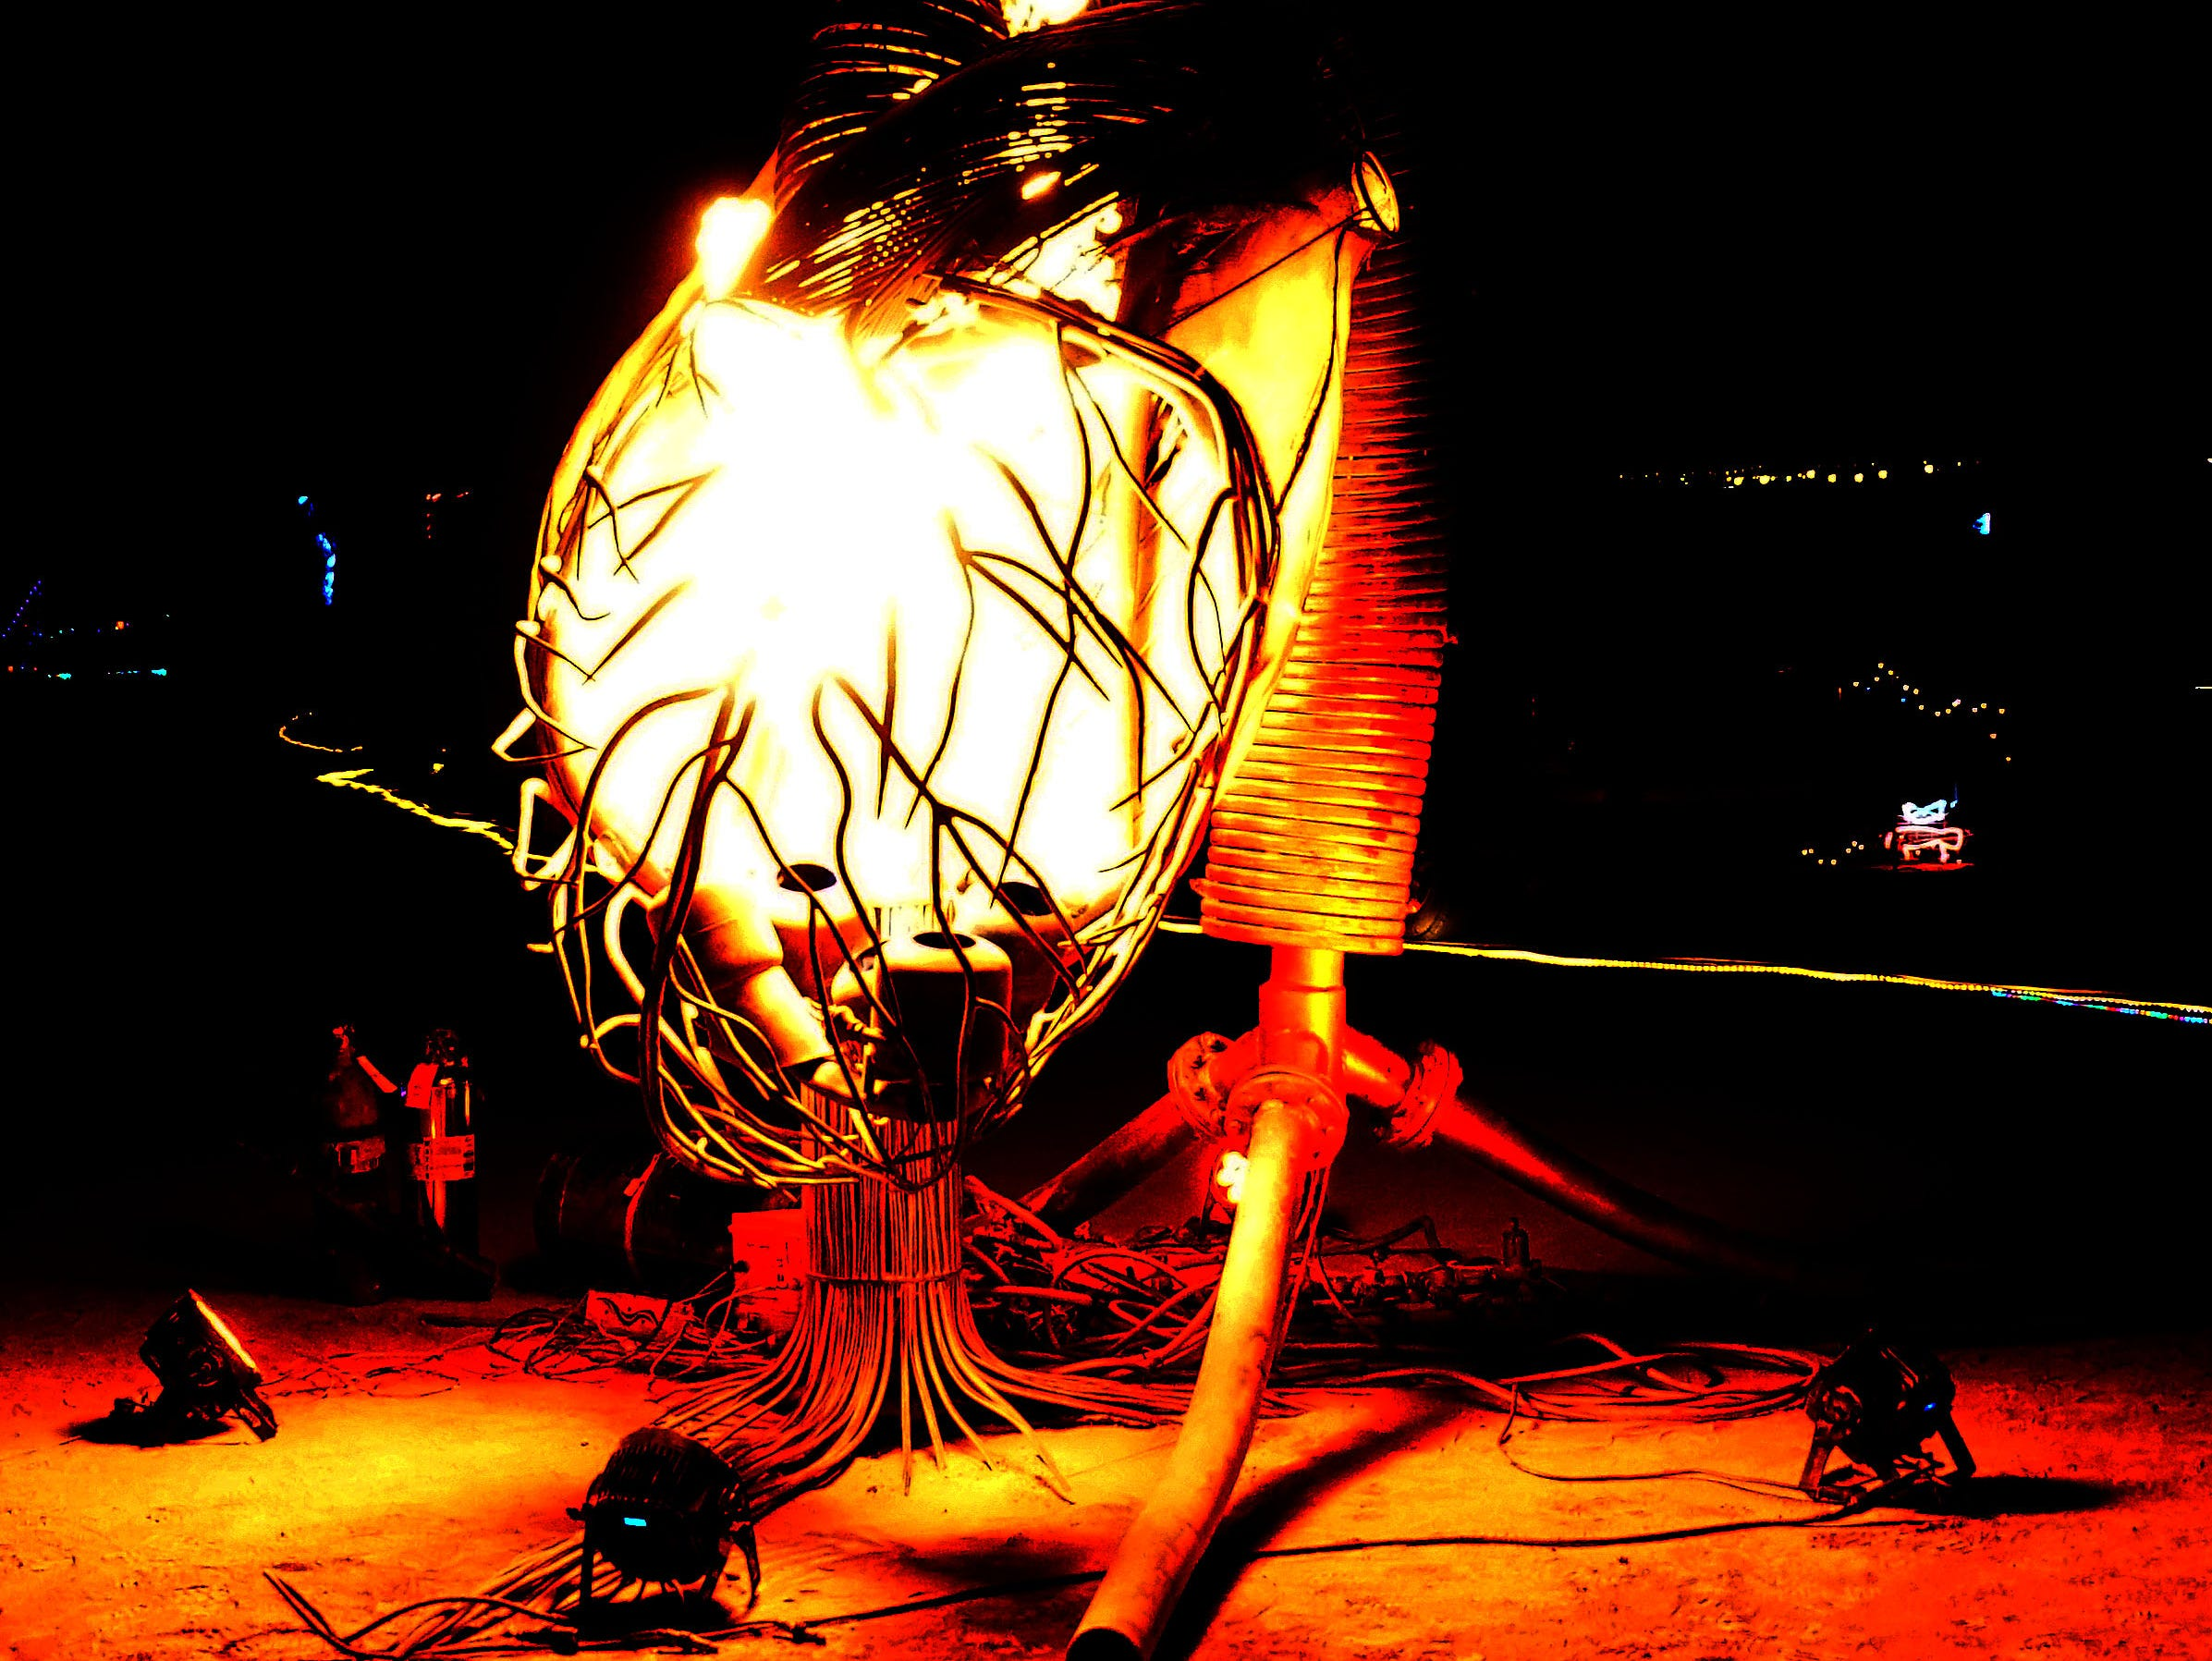 A giant metal heart glows from fire within at Burning Man.